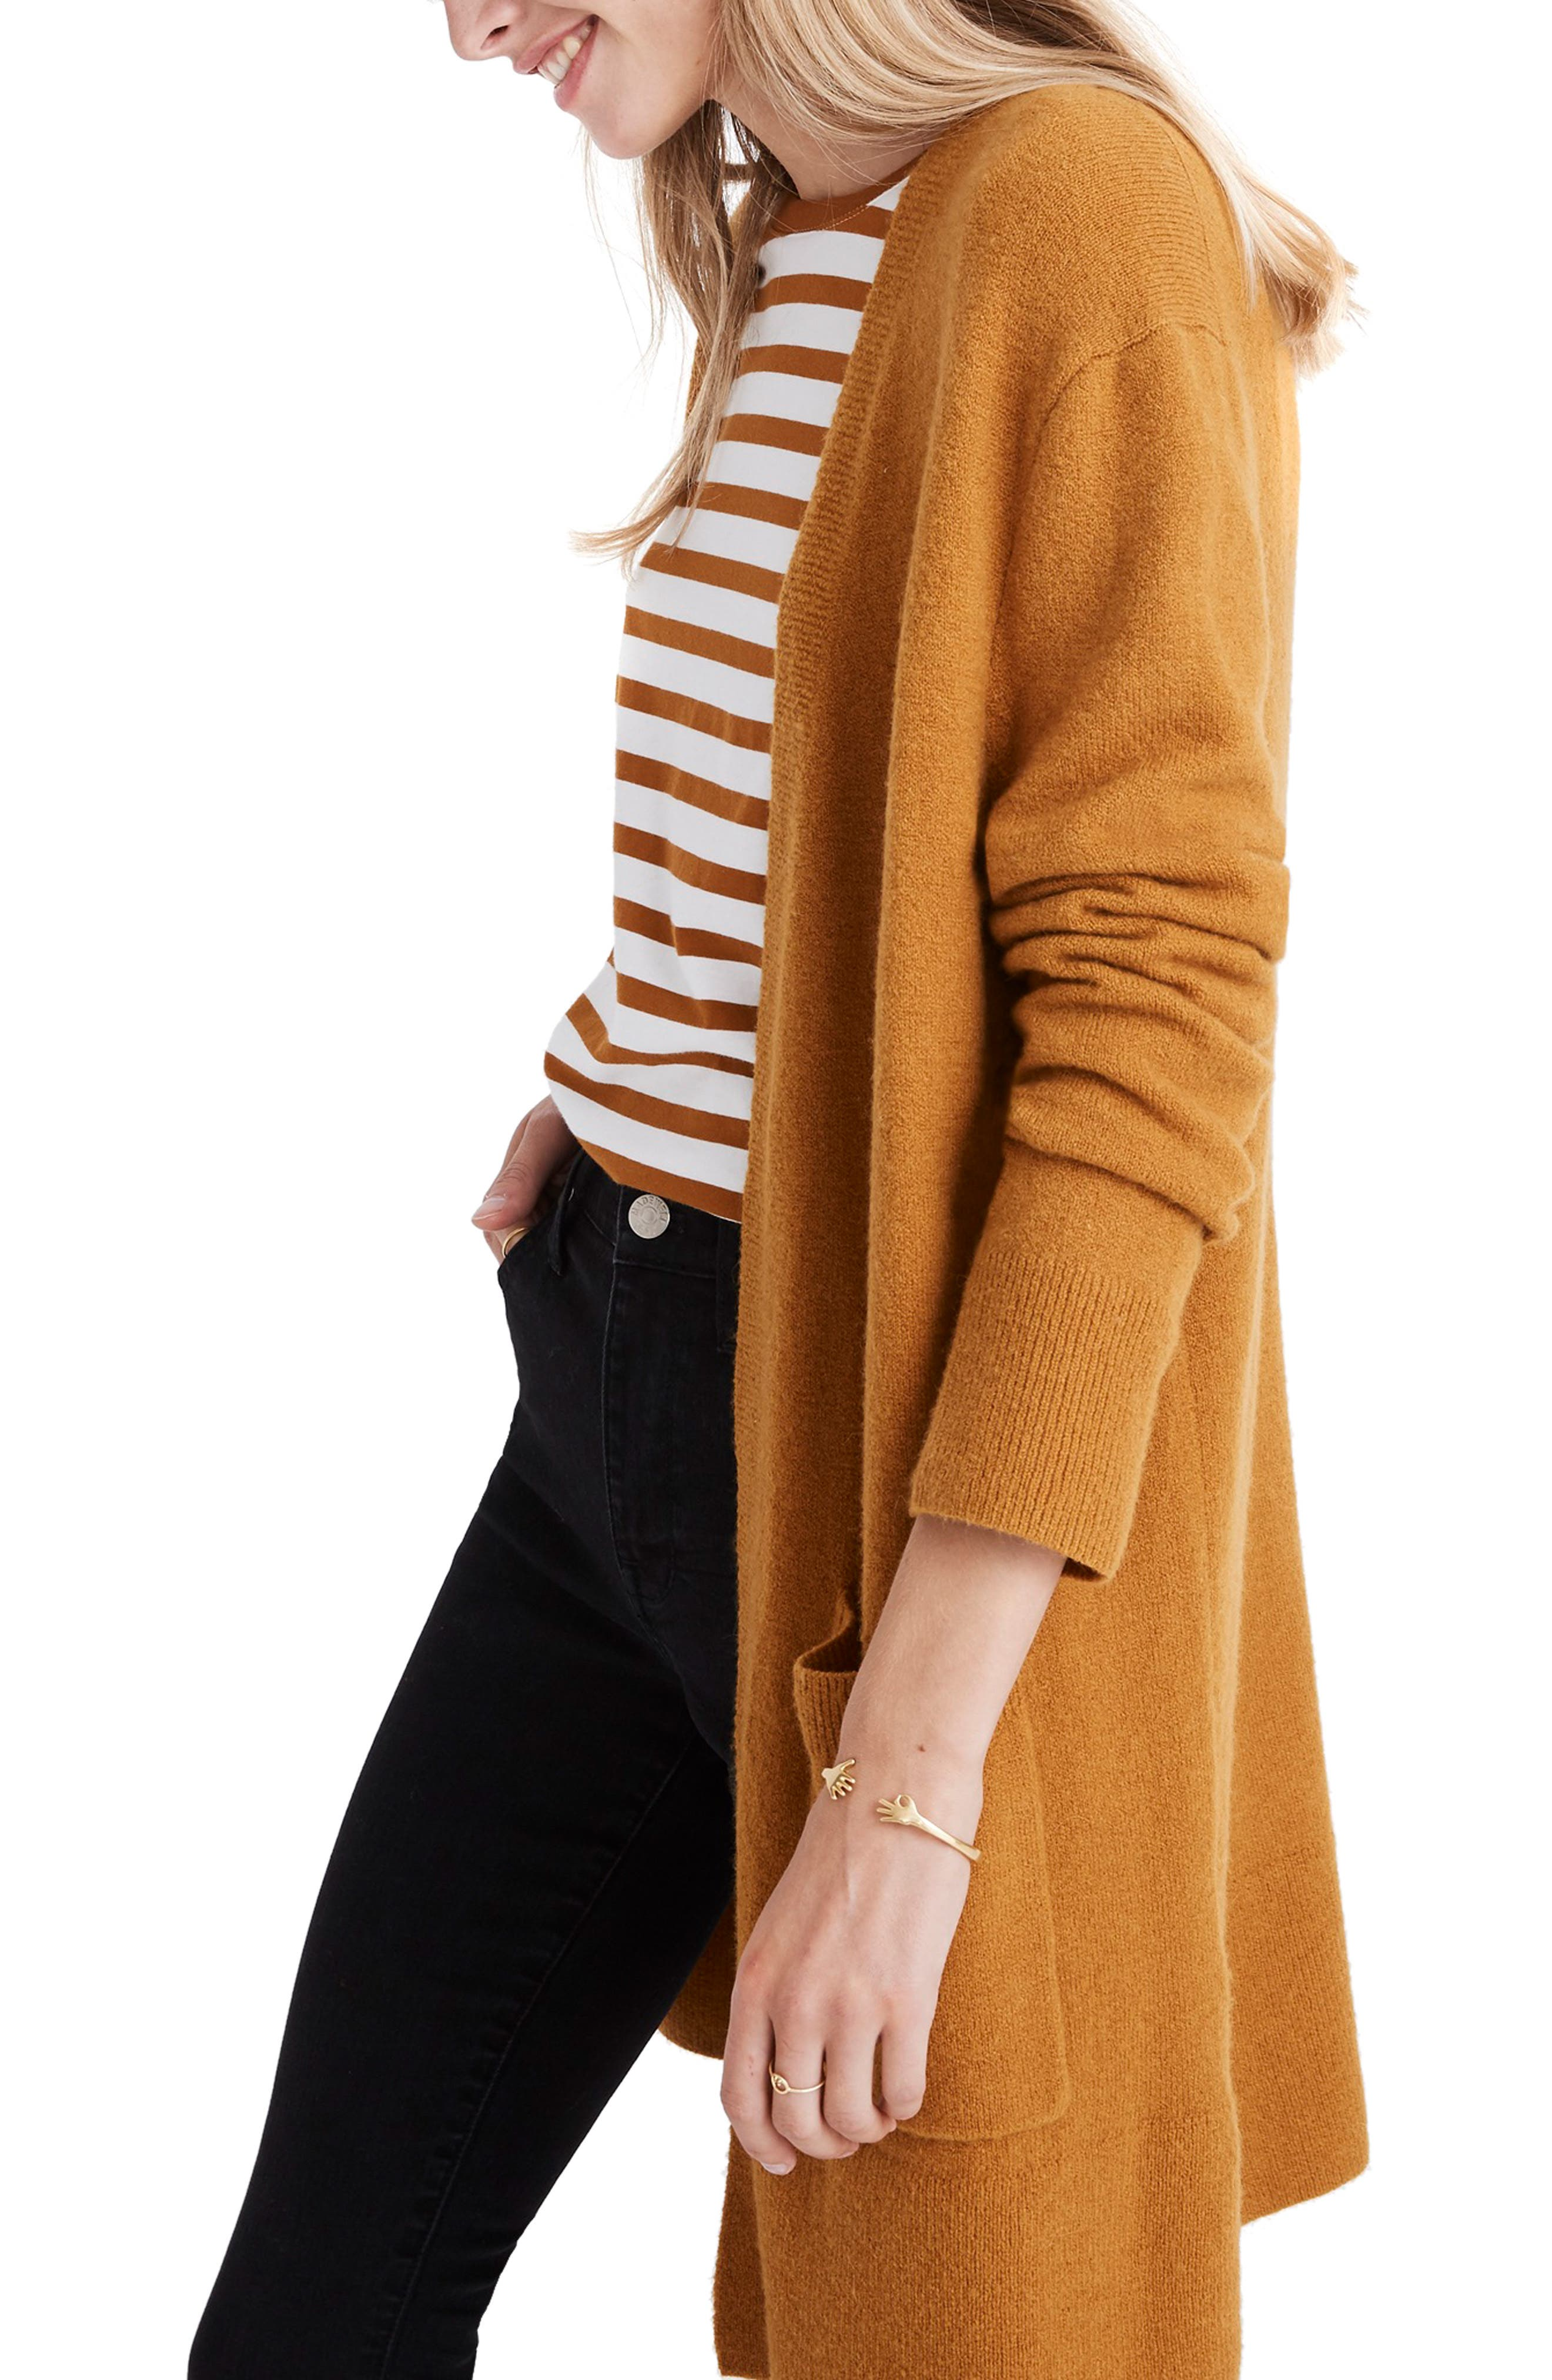 MADEWELL,                             Kent Cardigan Sweater,                             Alternate thumbnail 3, color,                             GOLDEN HARVEST